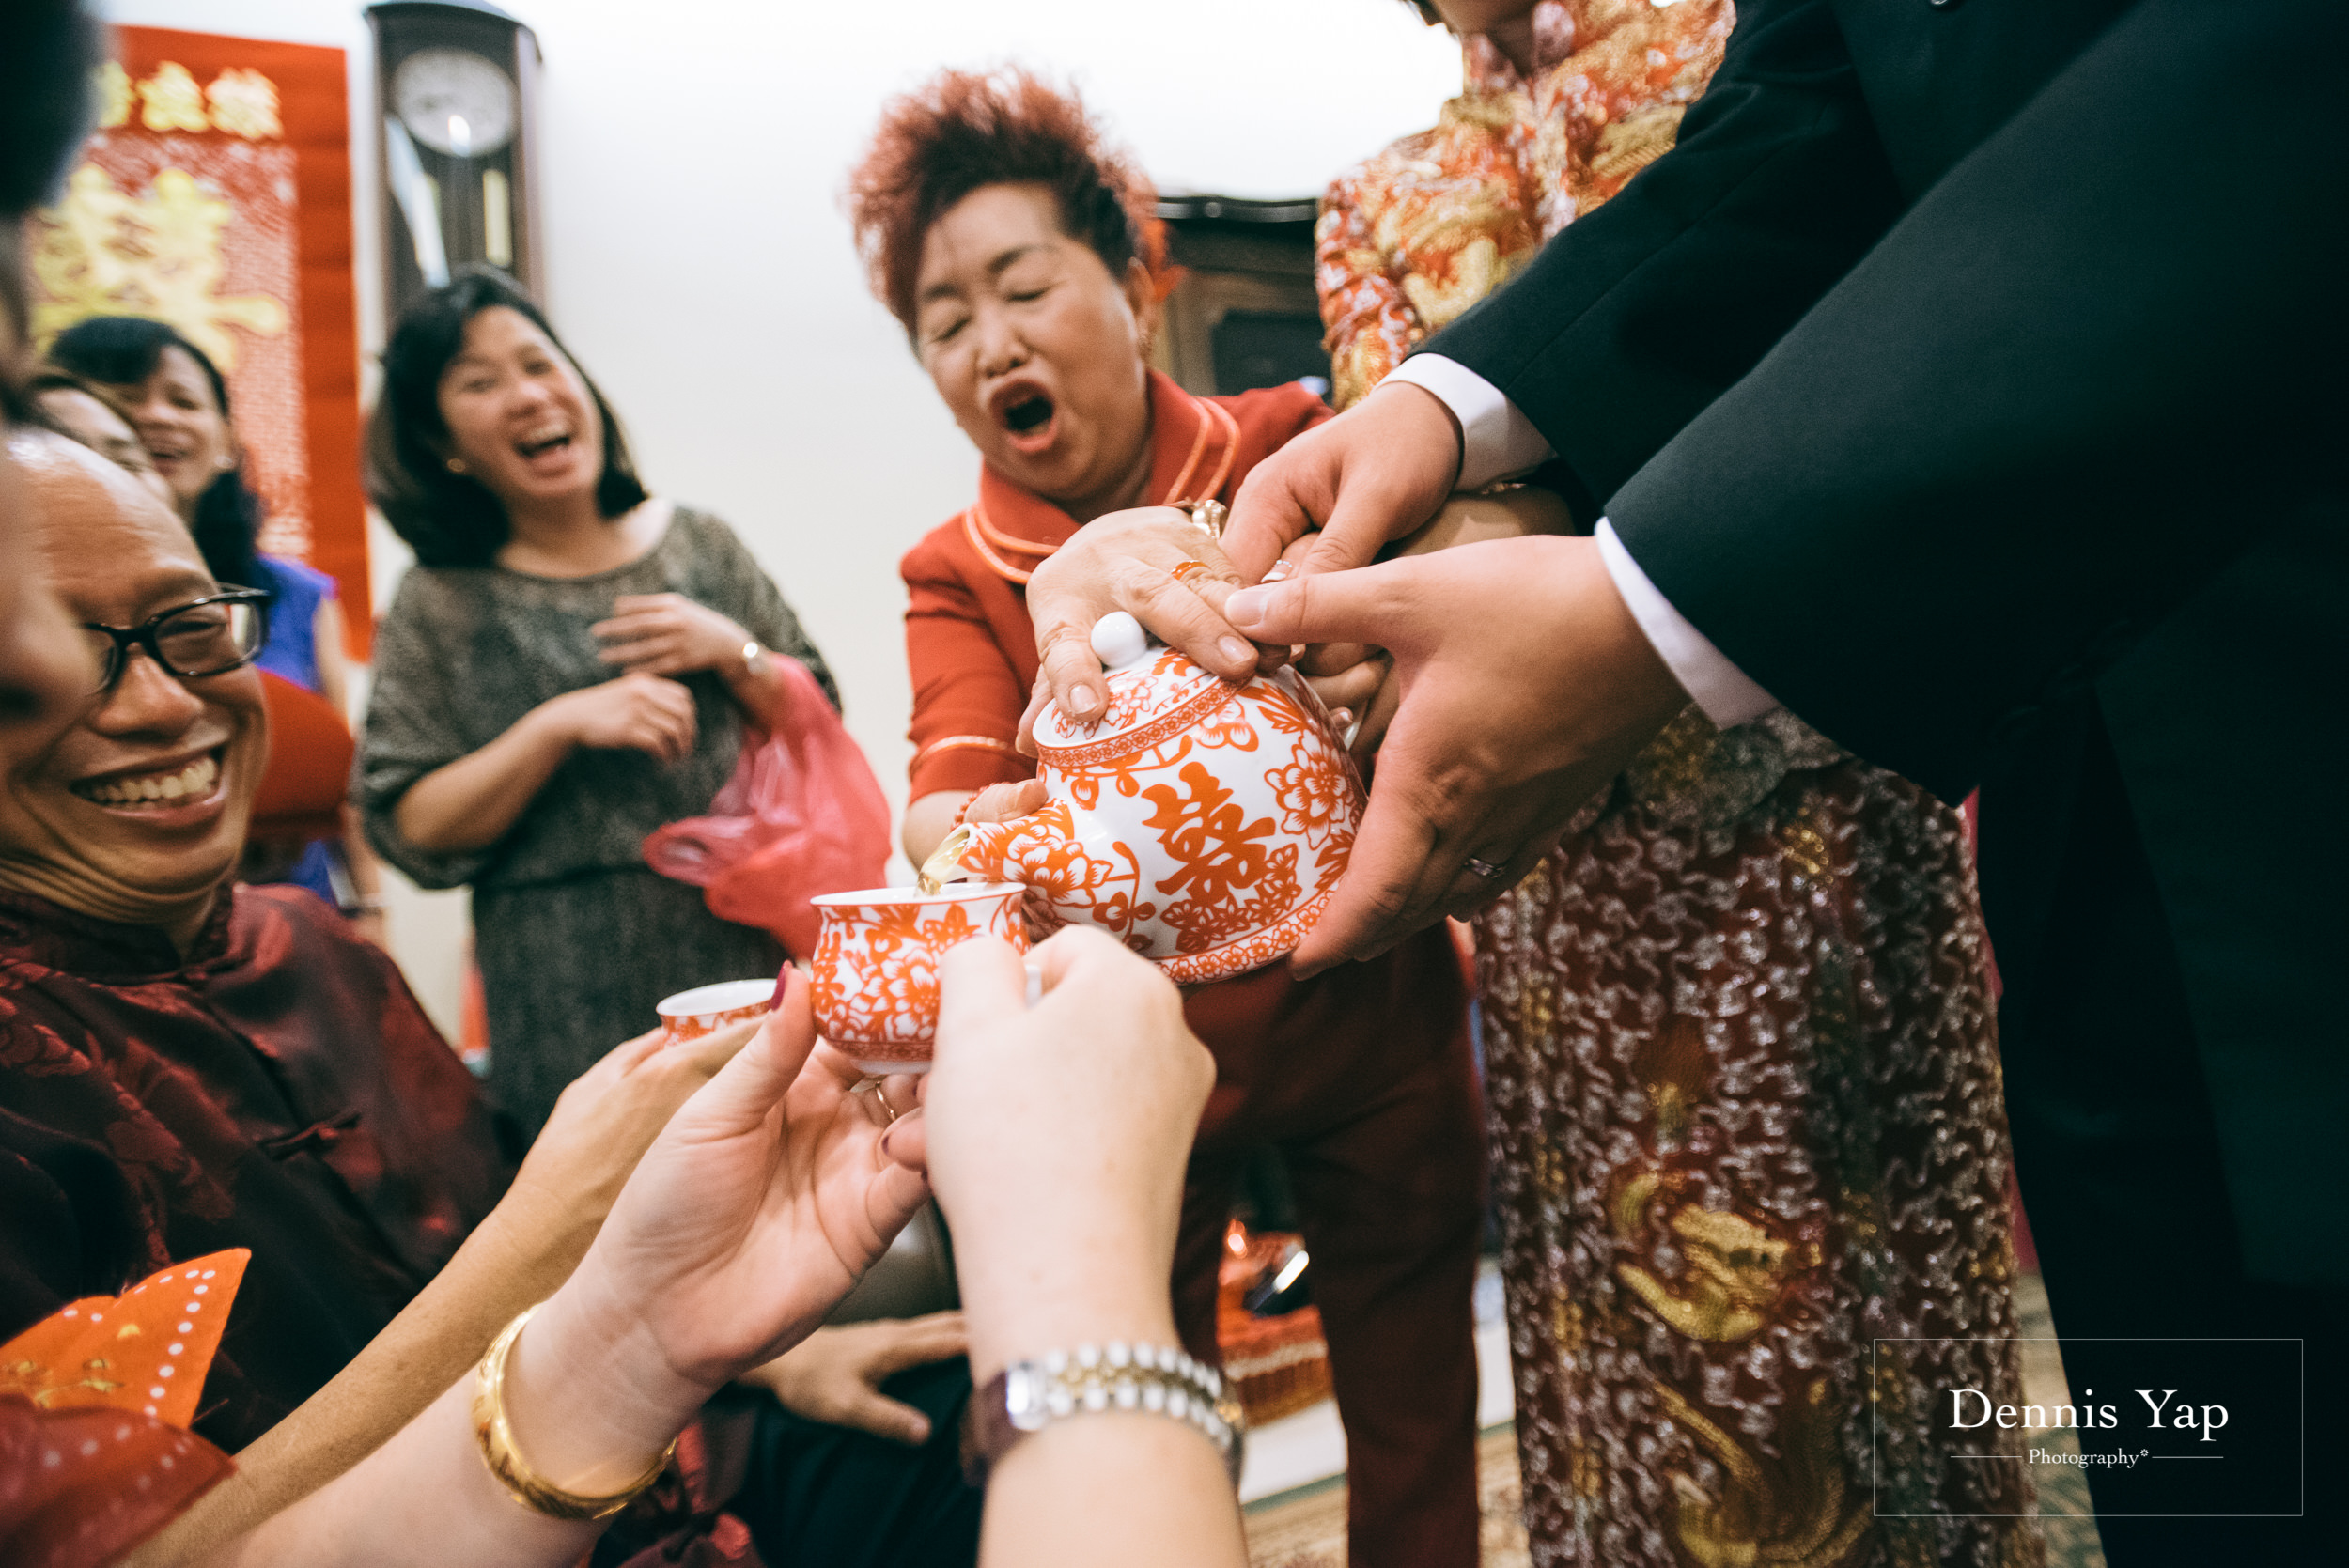 edmond erica tea ceremony kuala lumpur dennis yap photography chinese traditional happy-15.jpg